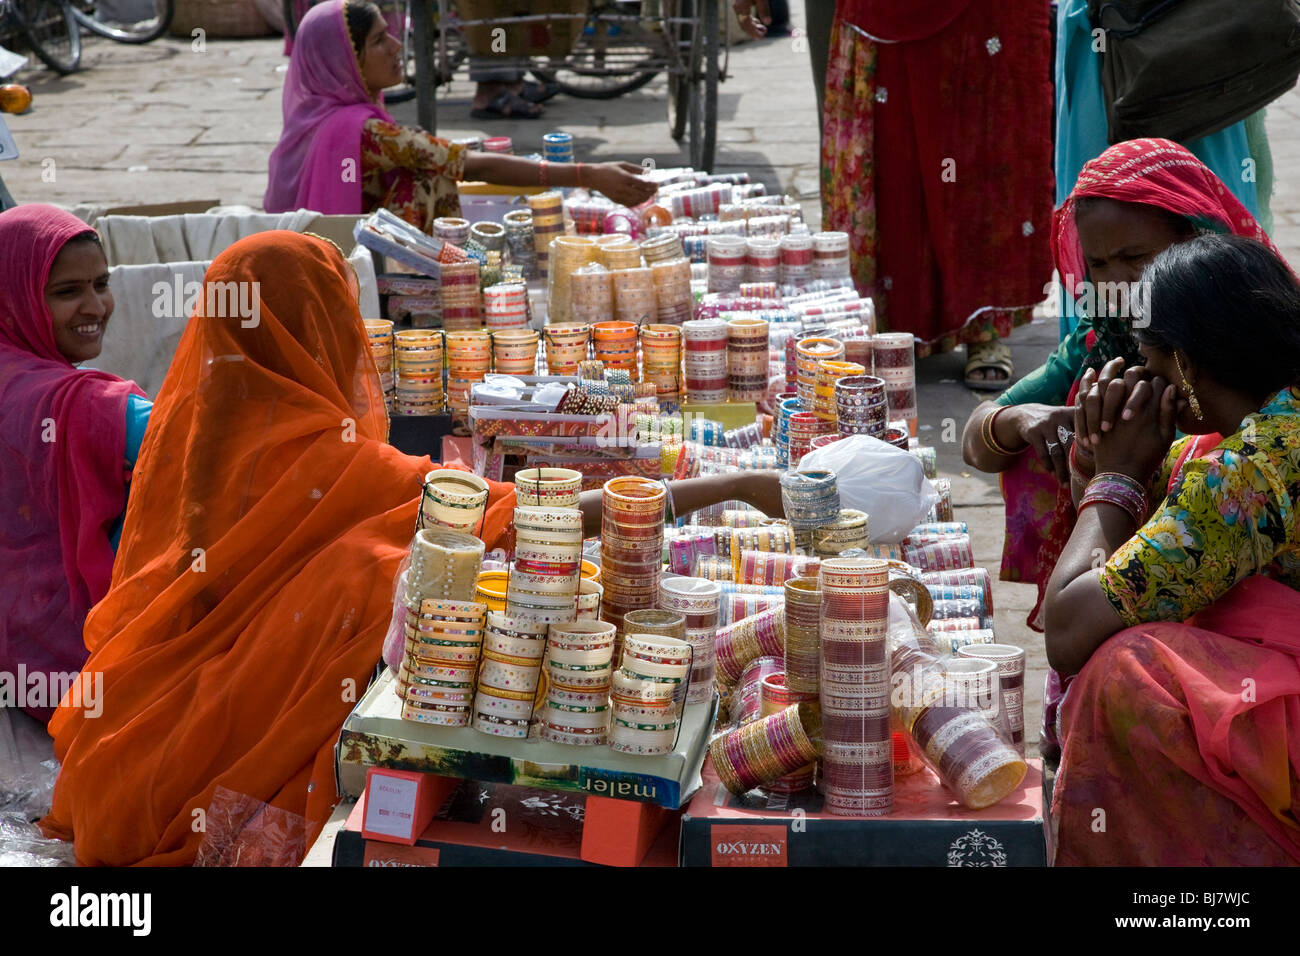 because heart to profitable every thebangleblog held his bangle what be img felt time would shop why selling at bangles no her age close that matter woman ancestors